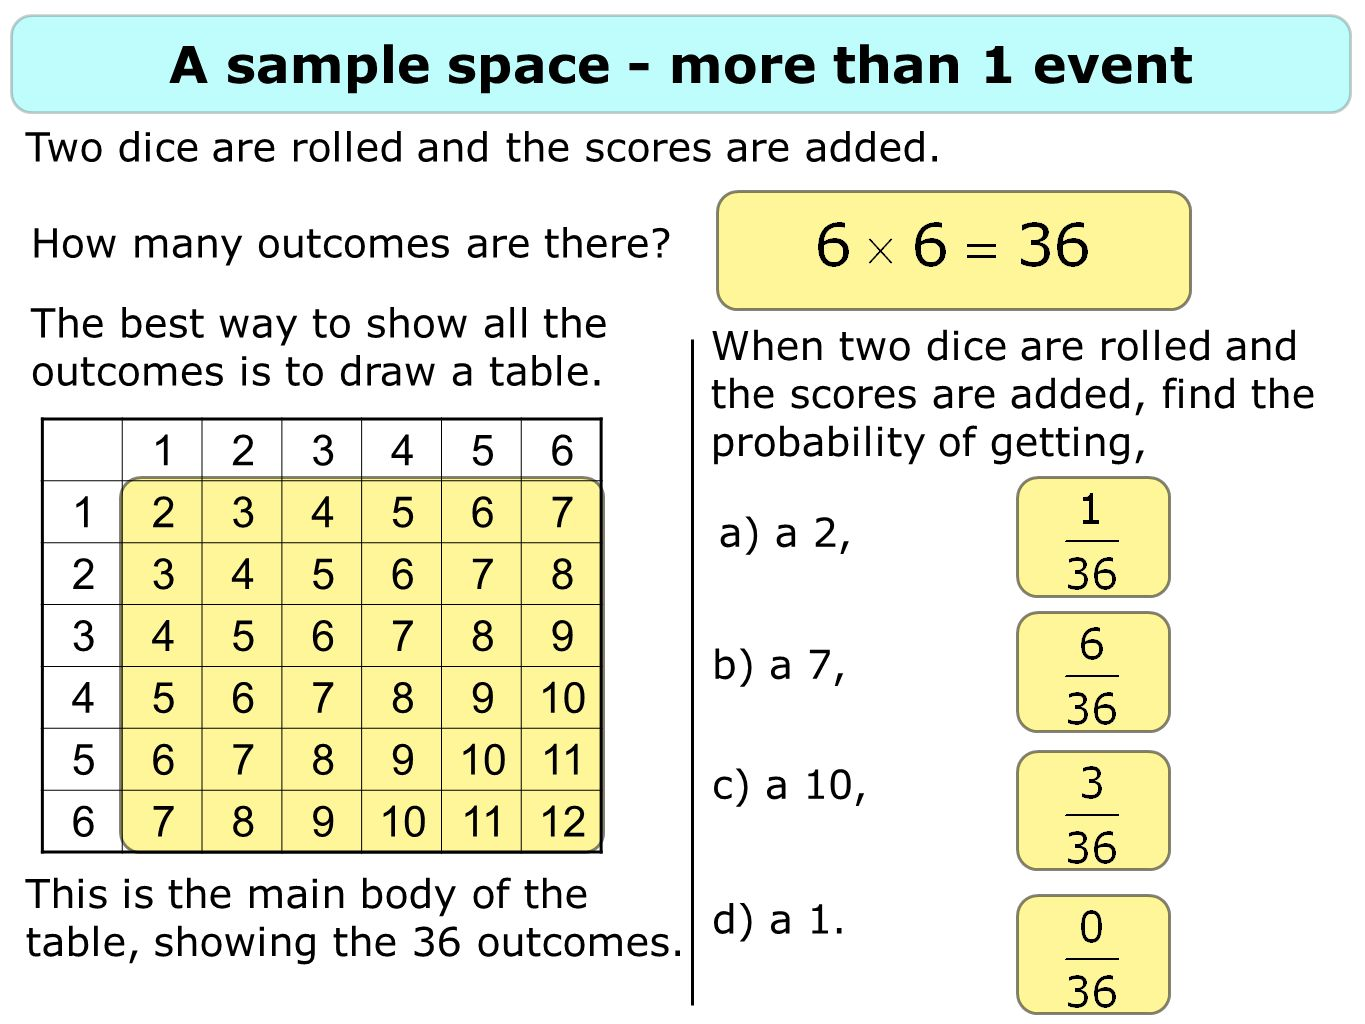 A sample space - more than 1 event